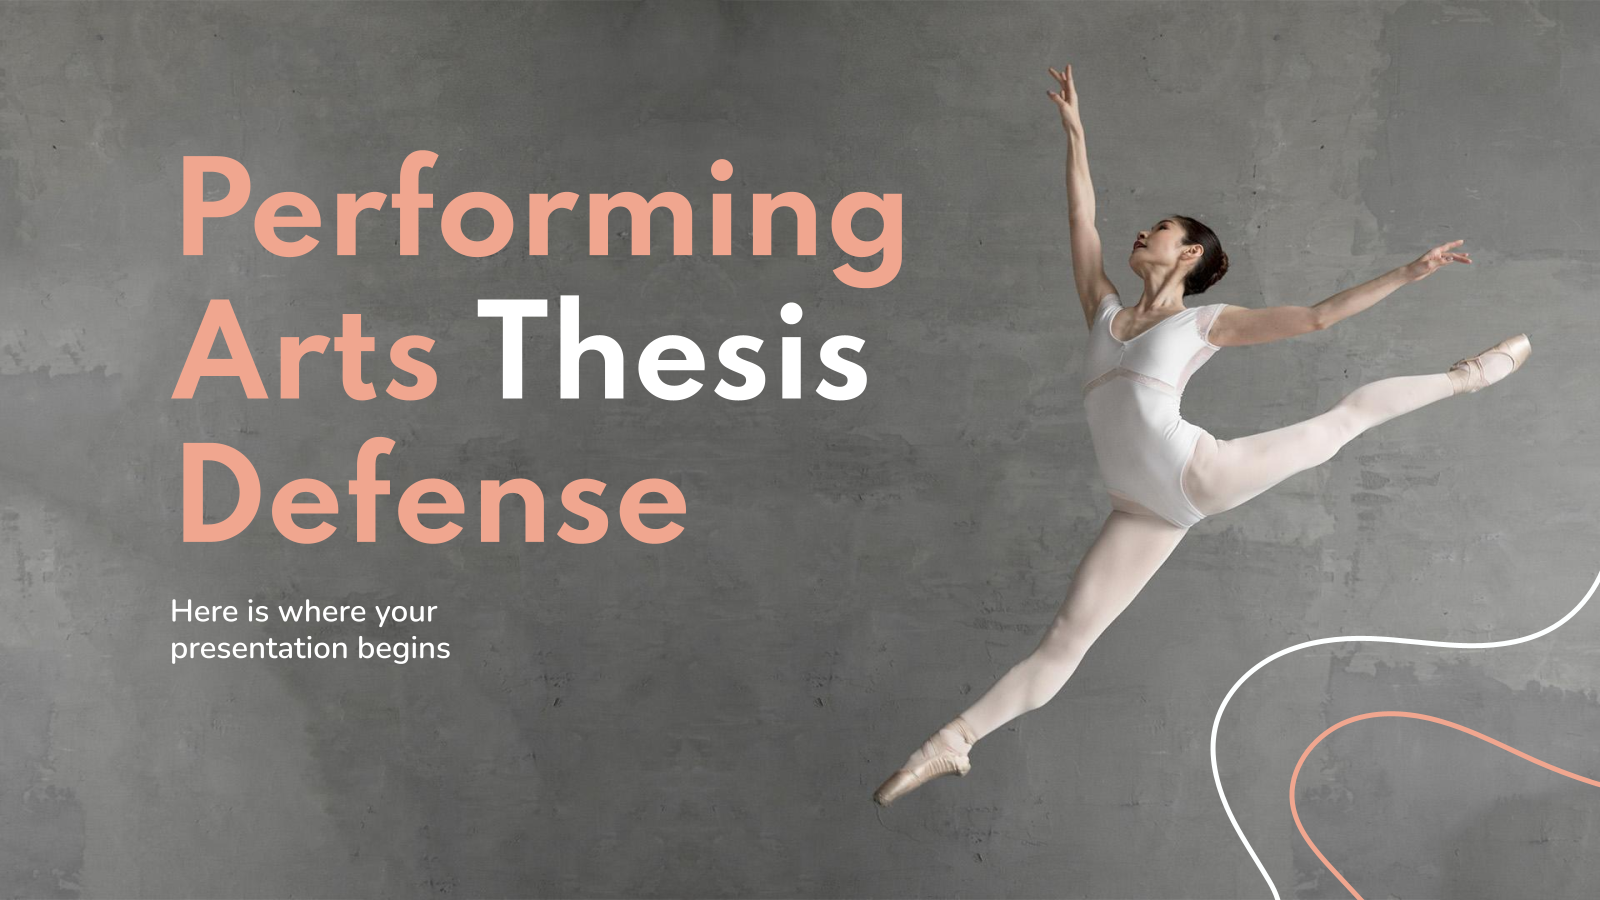 Performing Arts Thesis Defense presentation template